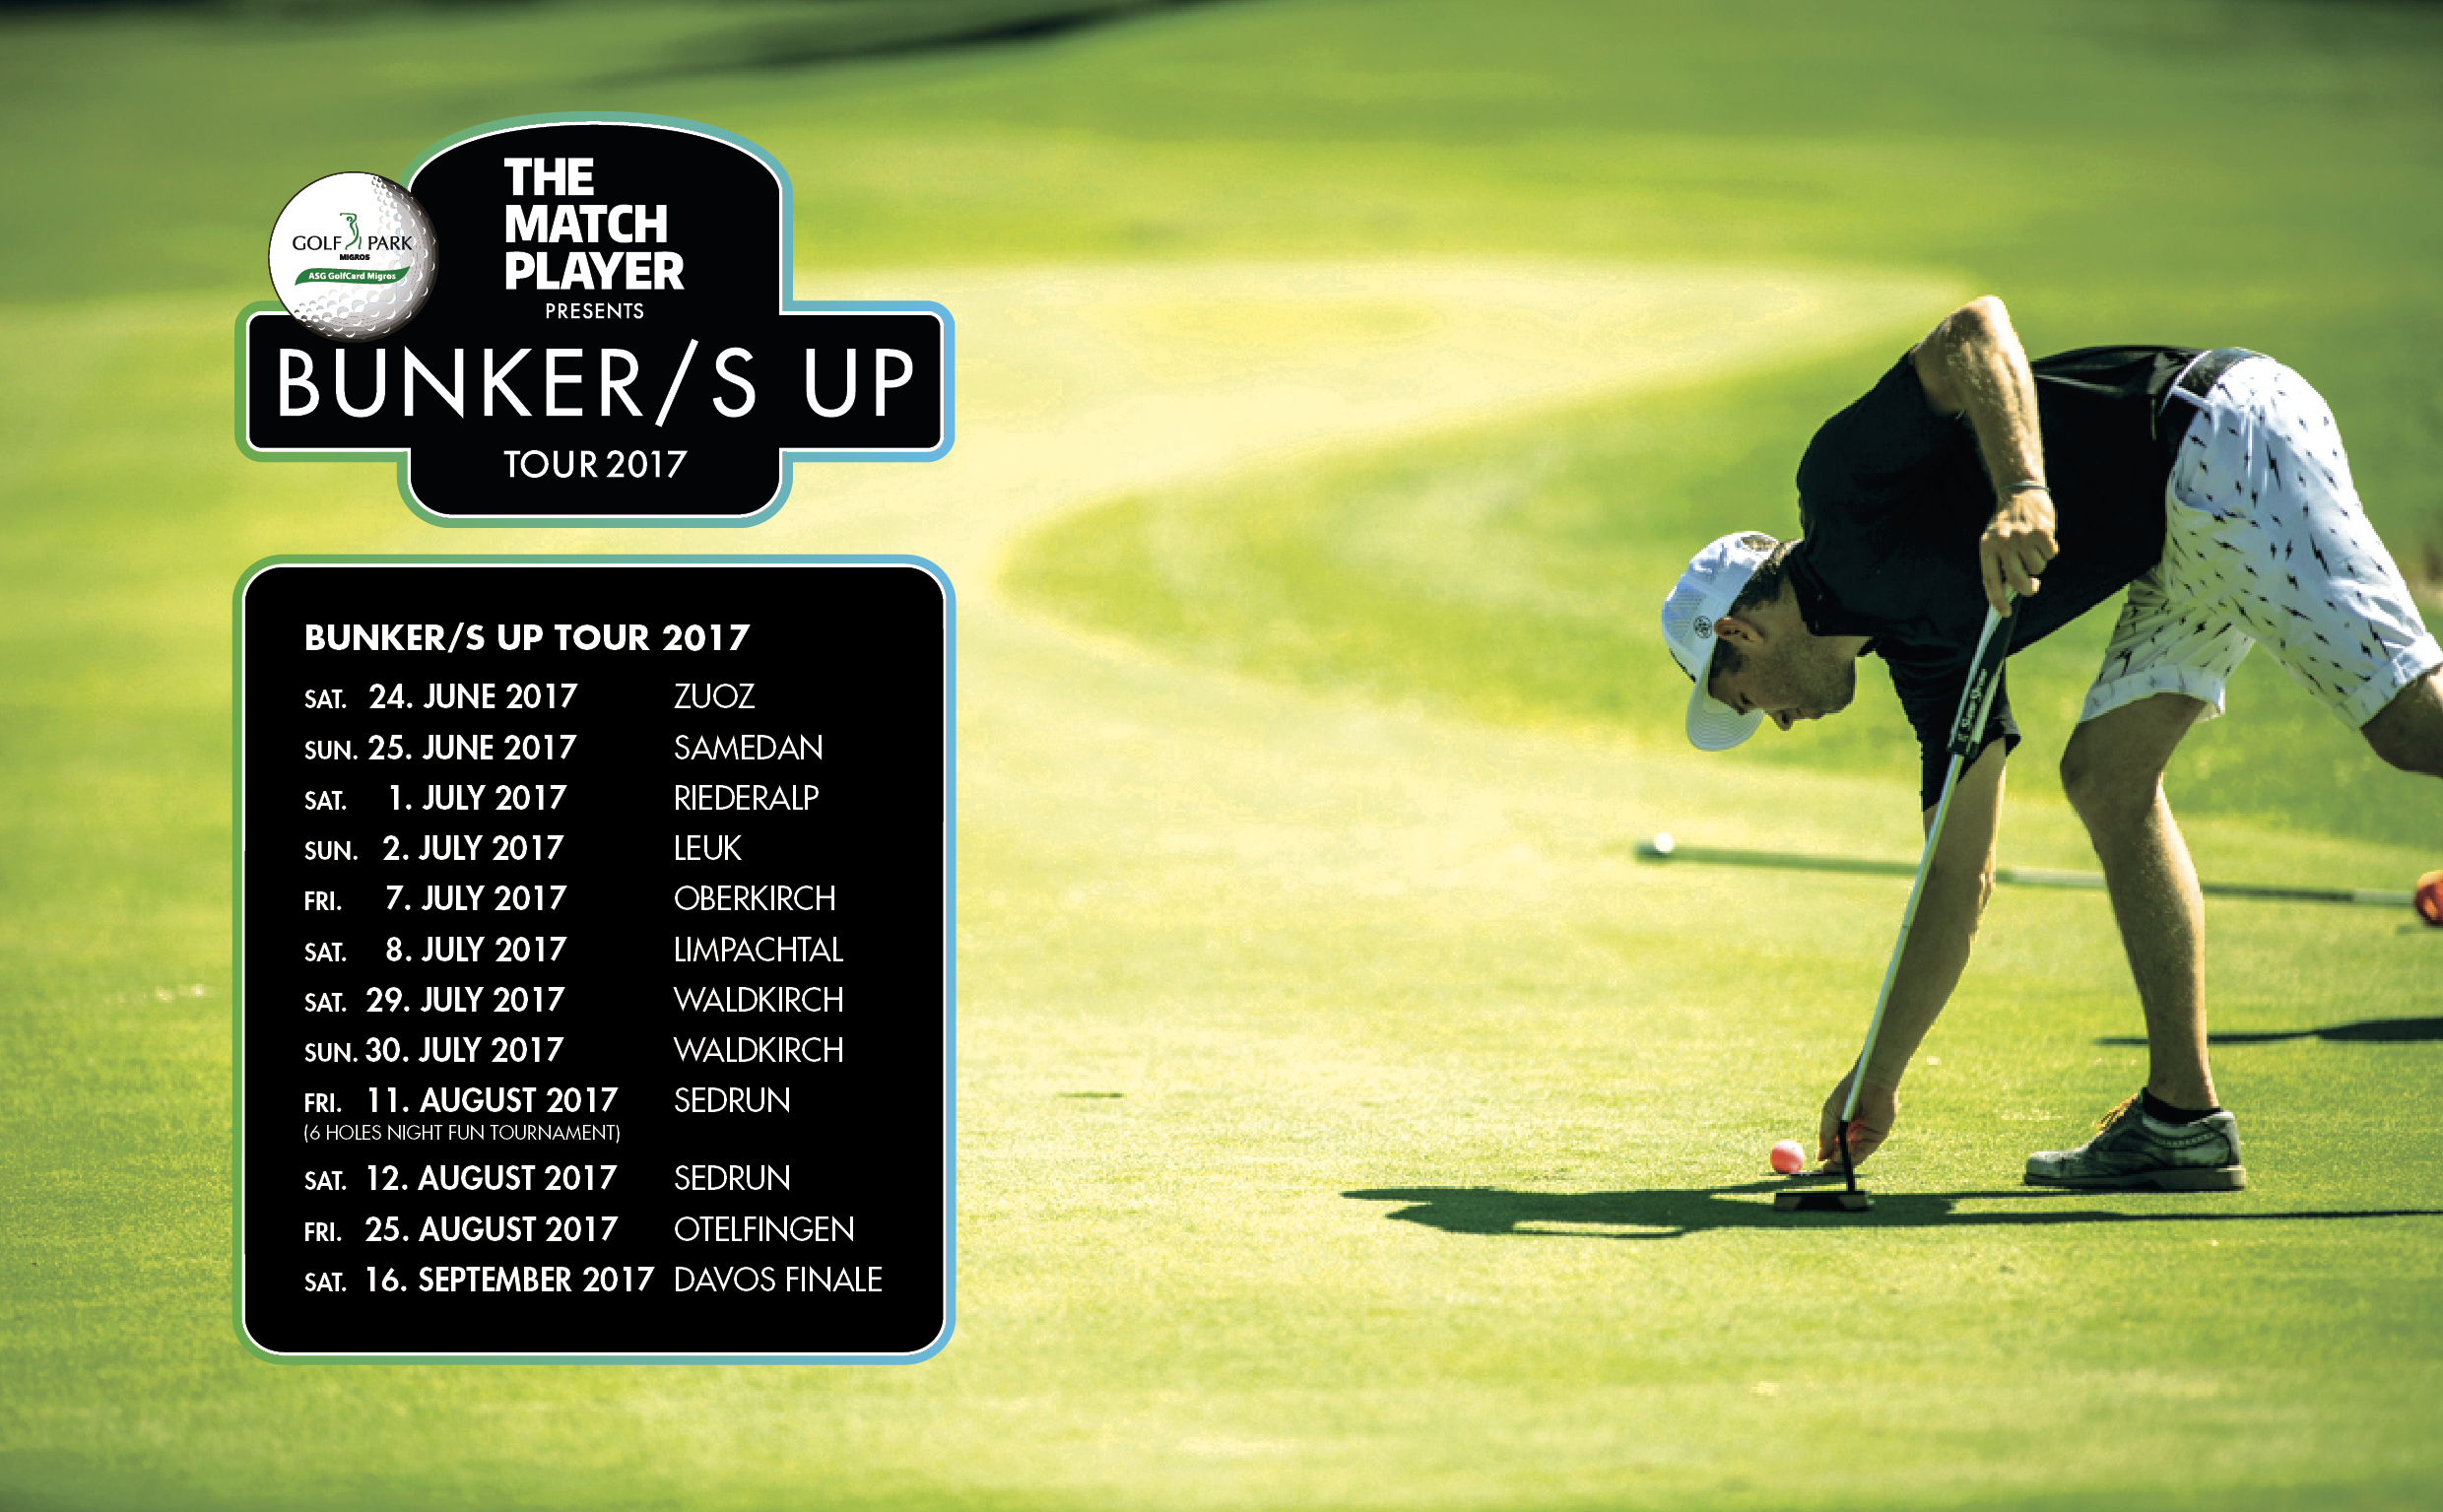 The Matchplayer presents BUNKER/S UP Tour 2017 with support of the ASG GolfCard Migros